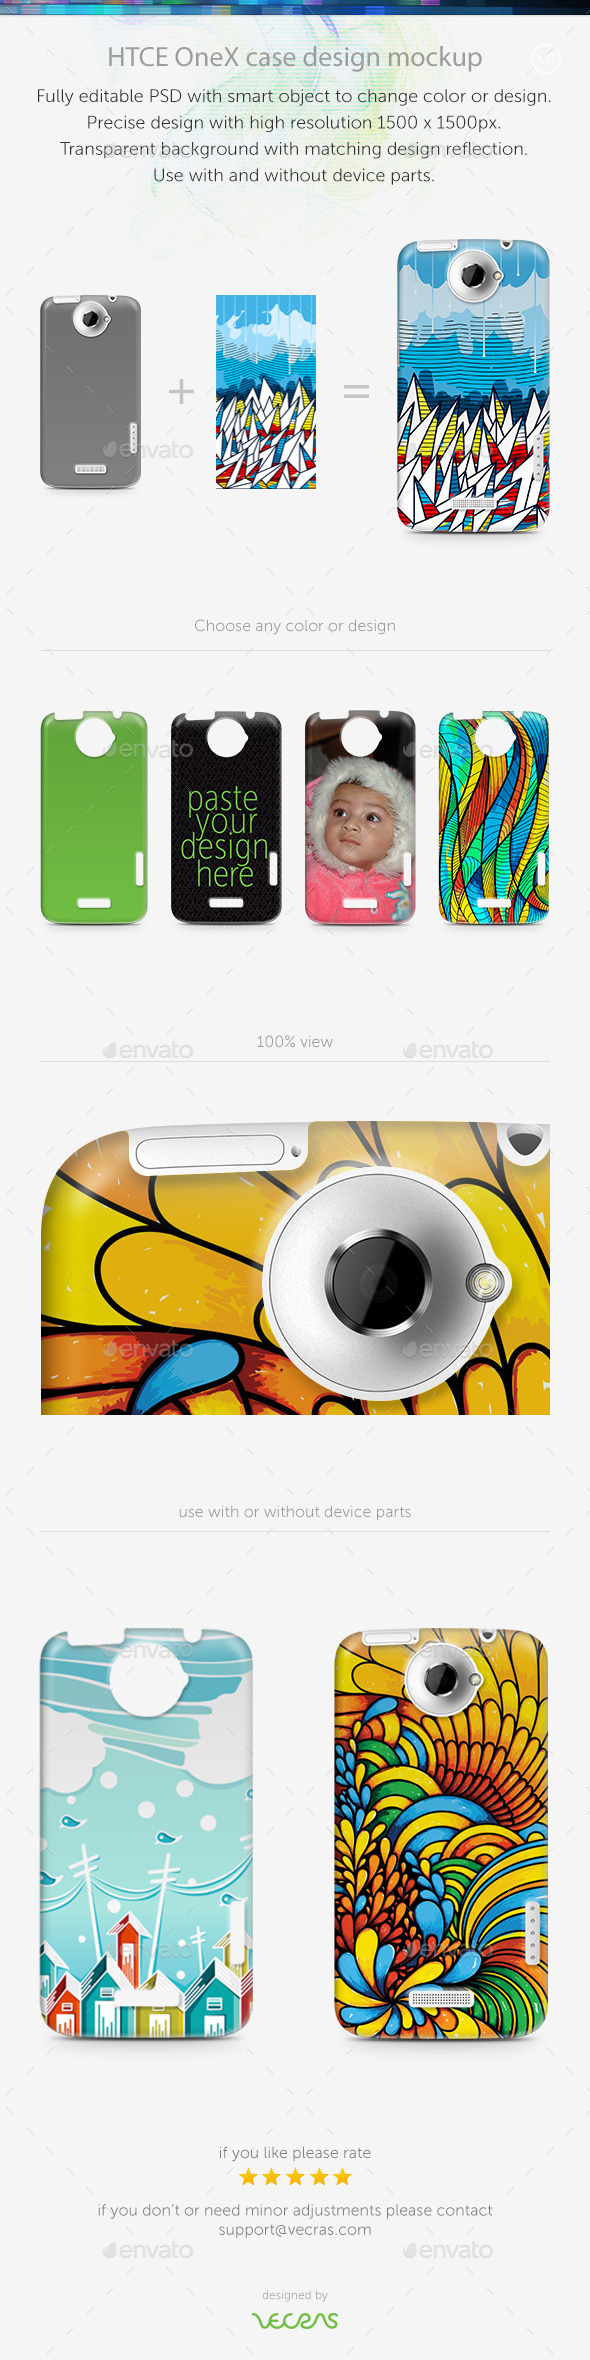 GraphicRiver HTCE OneX Case Design Mockup 9701041